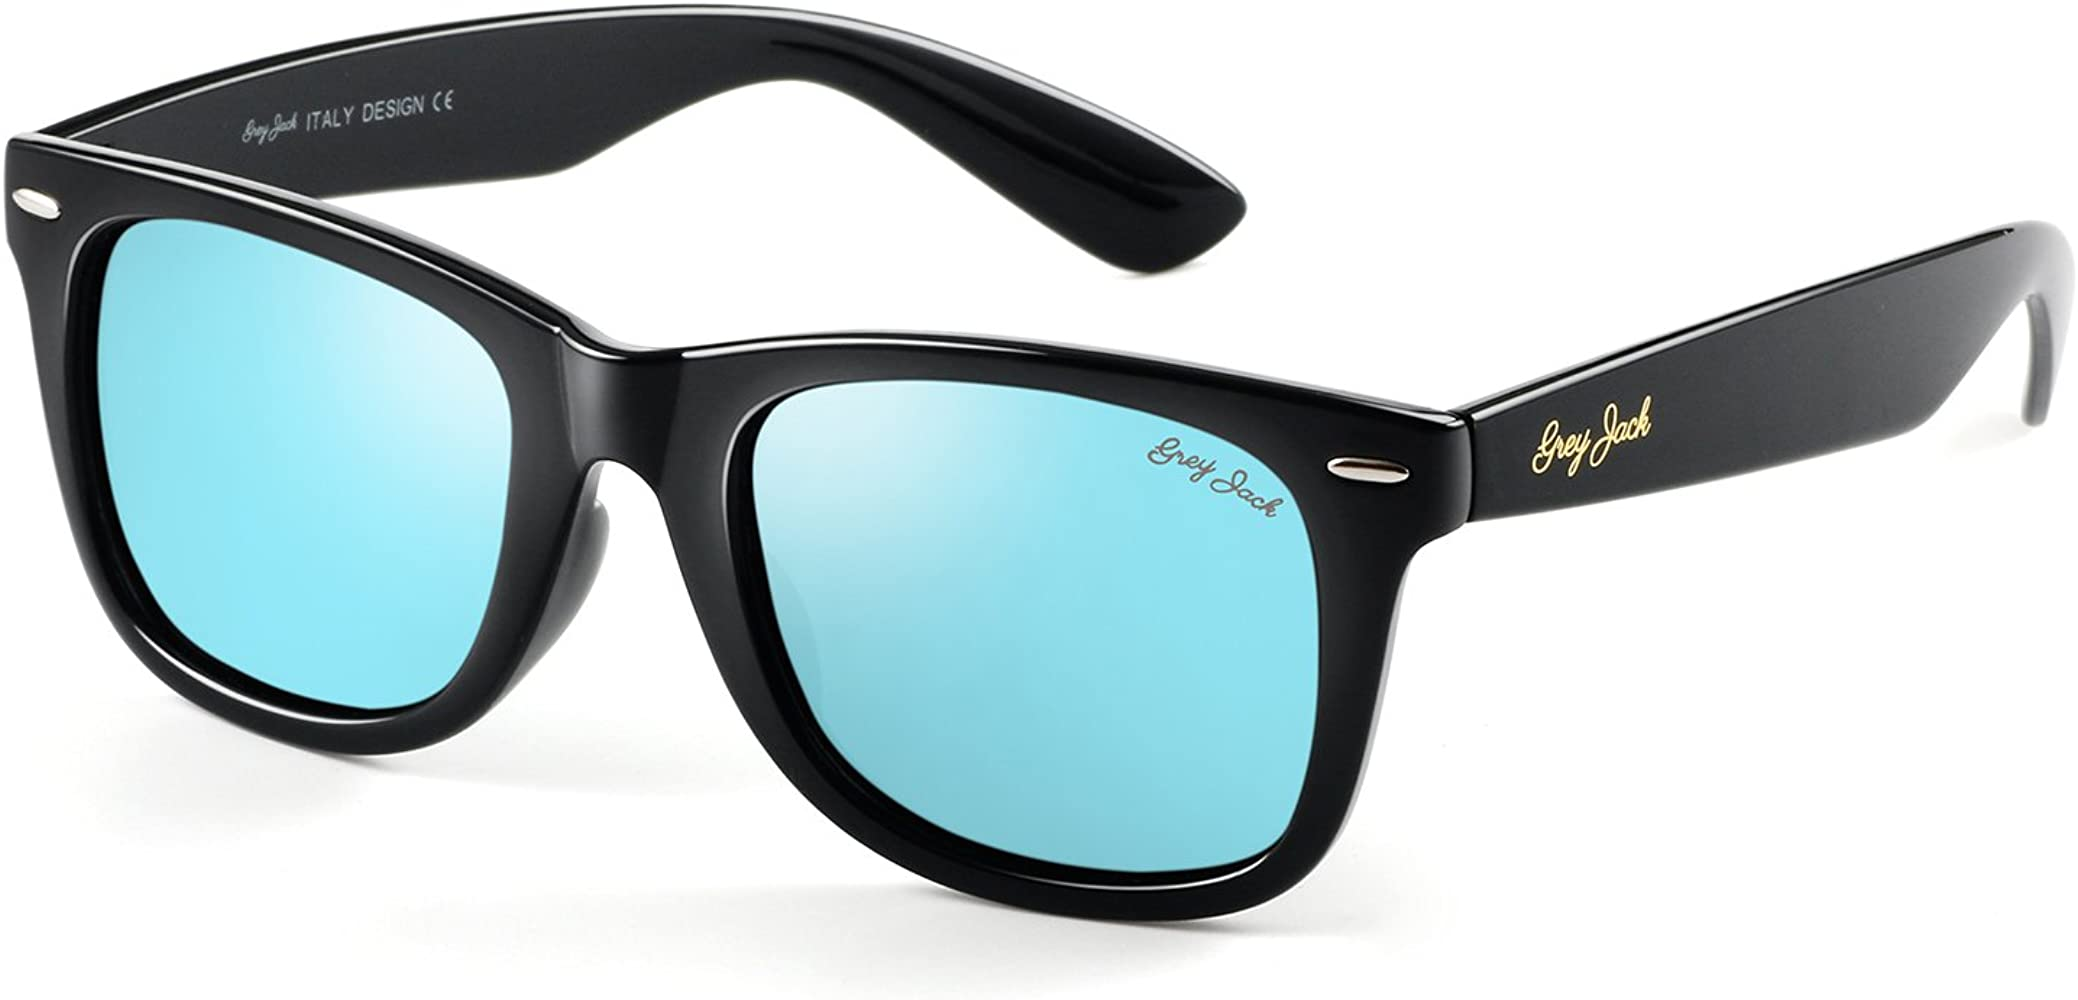 Classic Polarized Horn Rimmed Sunglasses